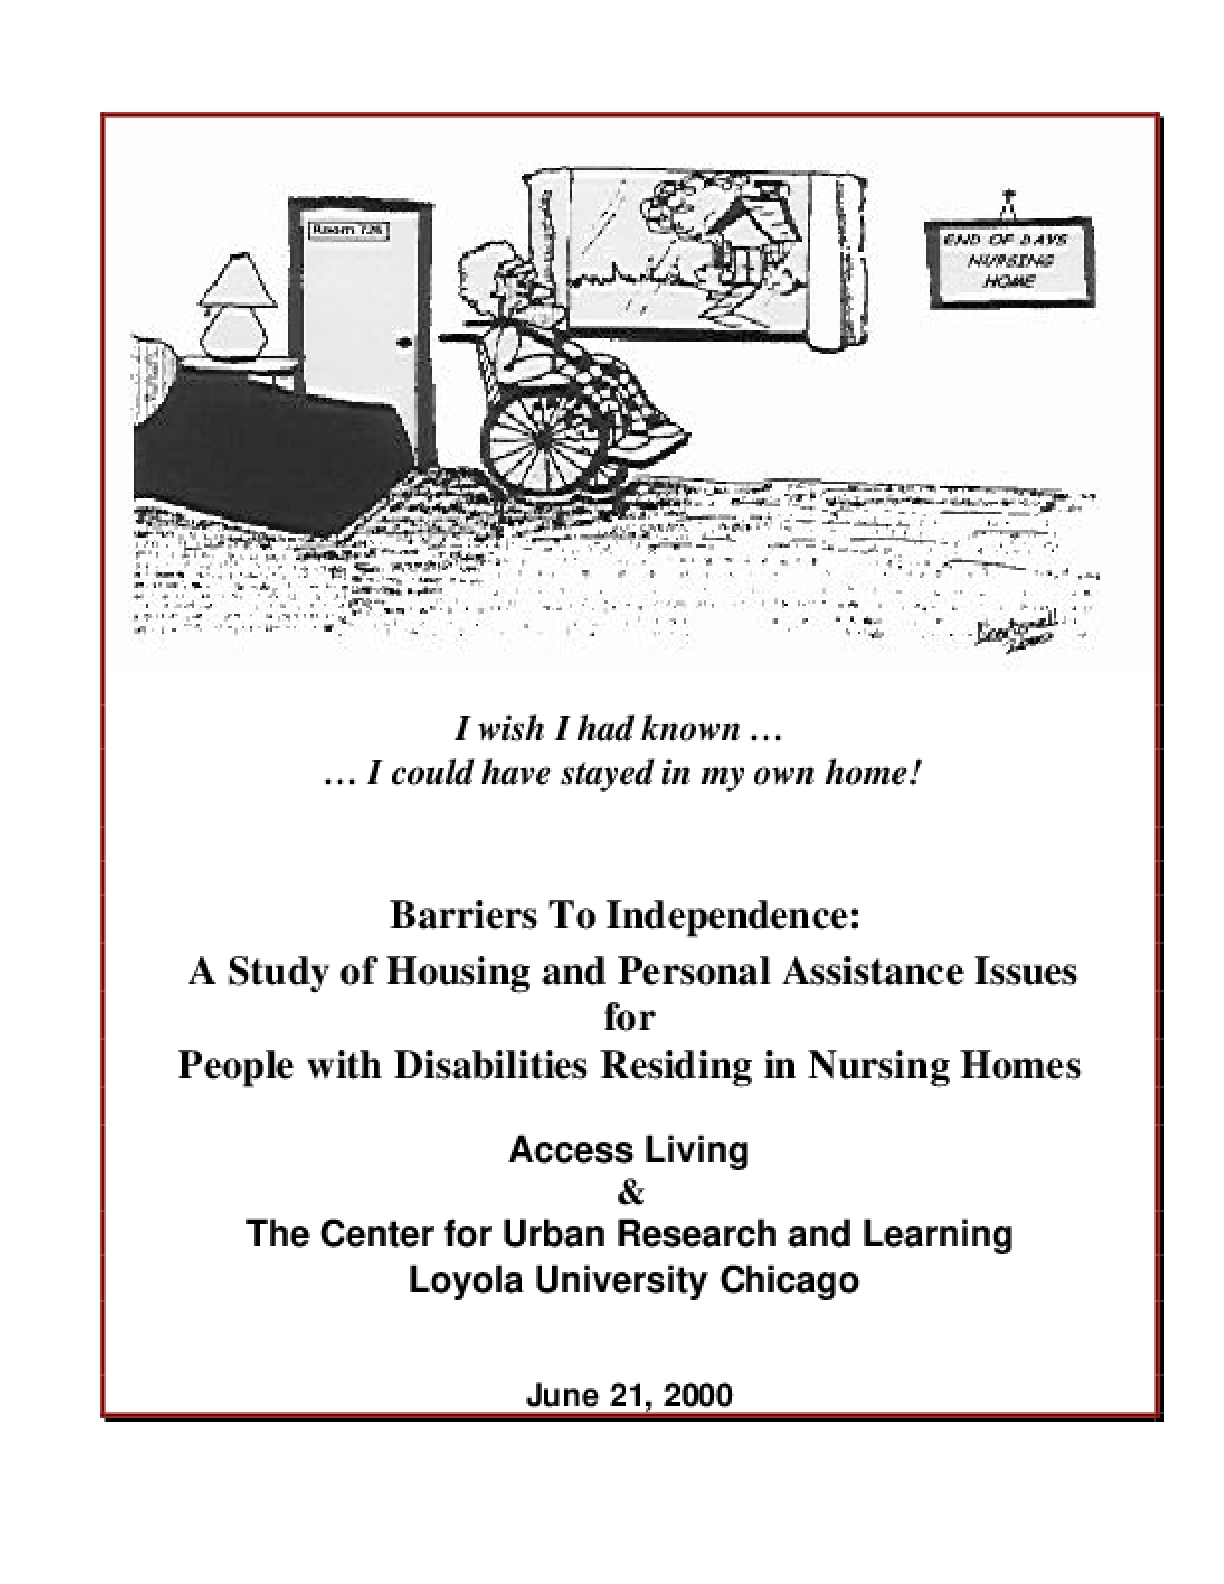 Barriers To Independence: A Study of Housing and Personal Assistance Issues for People with Disabilities Residing in Nursing Homes